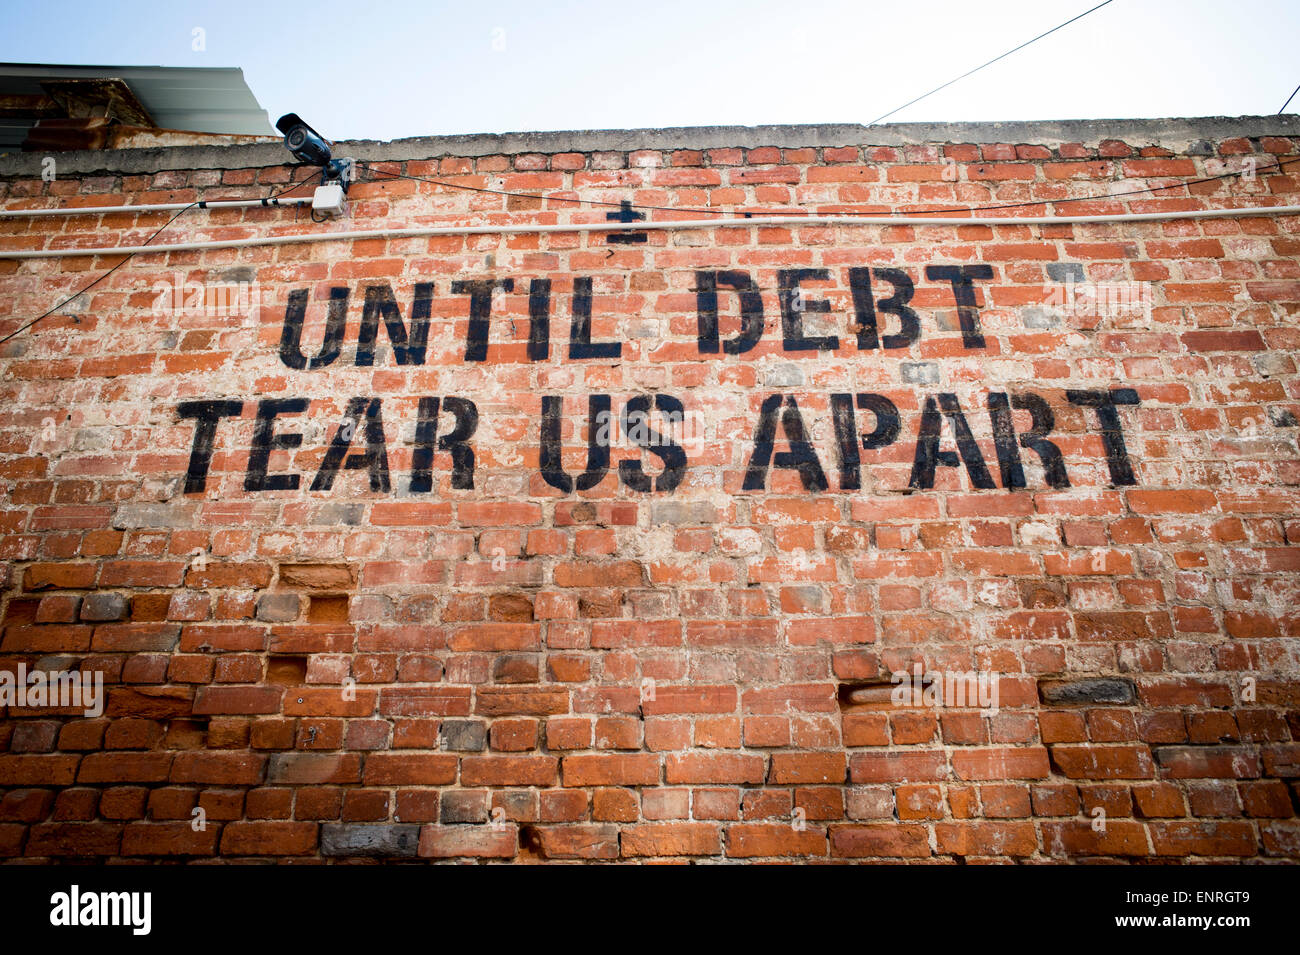 Until debt tear us apart message on a wall in the LX factory area of Lisbon, Portugal. - Stock Image